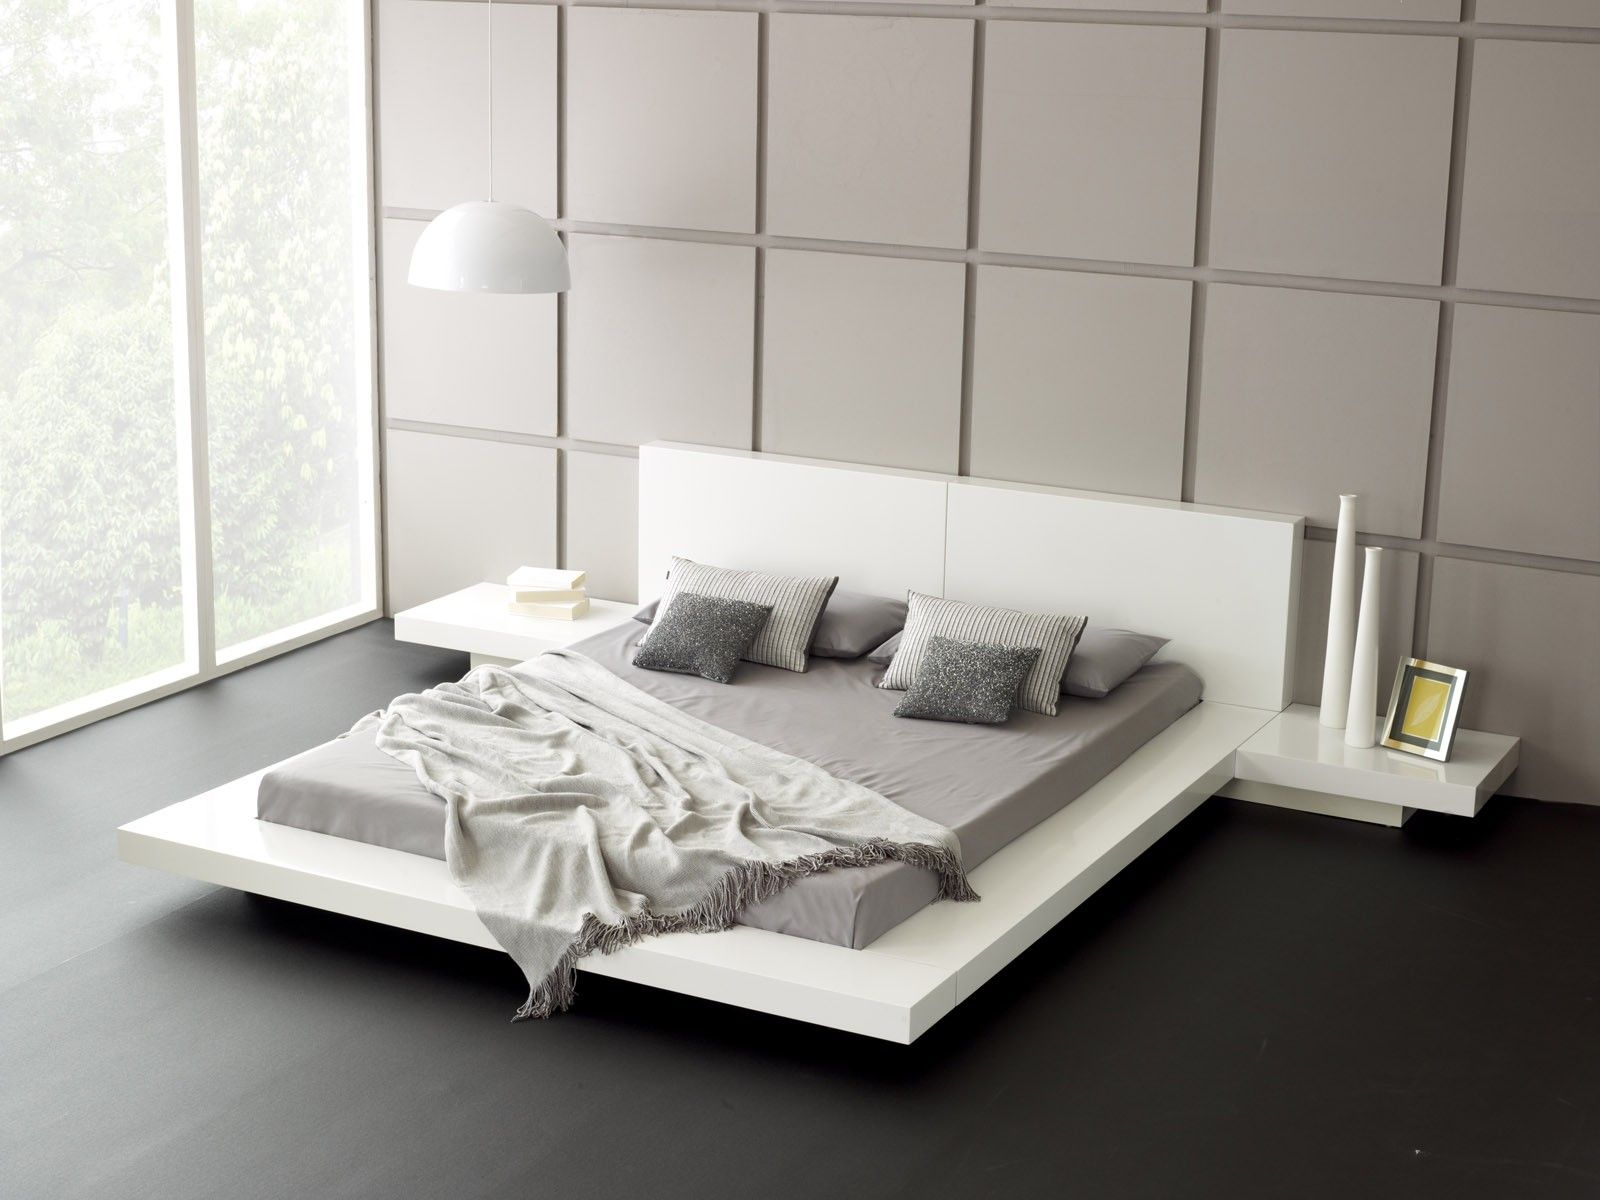 Bedroom modern. White and Grey Bedroom Ideas   Transforming Your Boring Room into